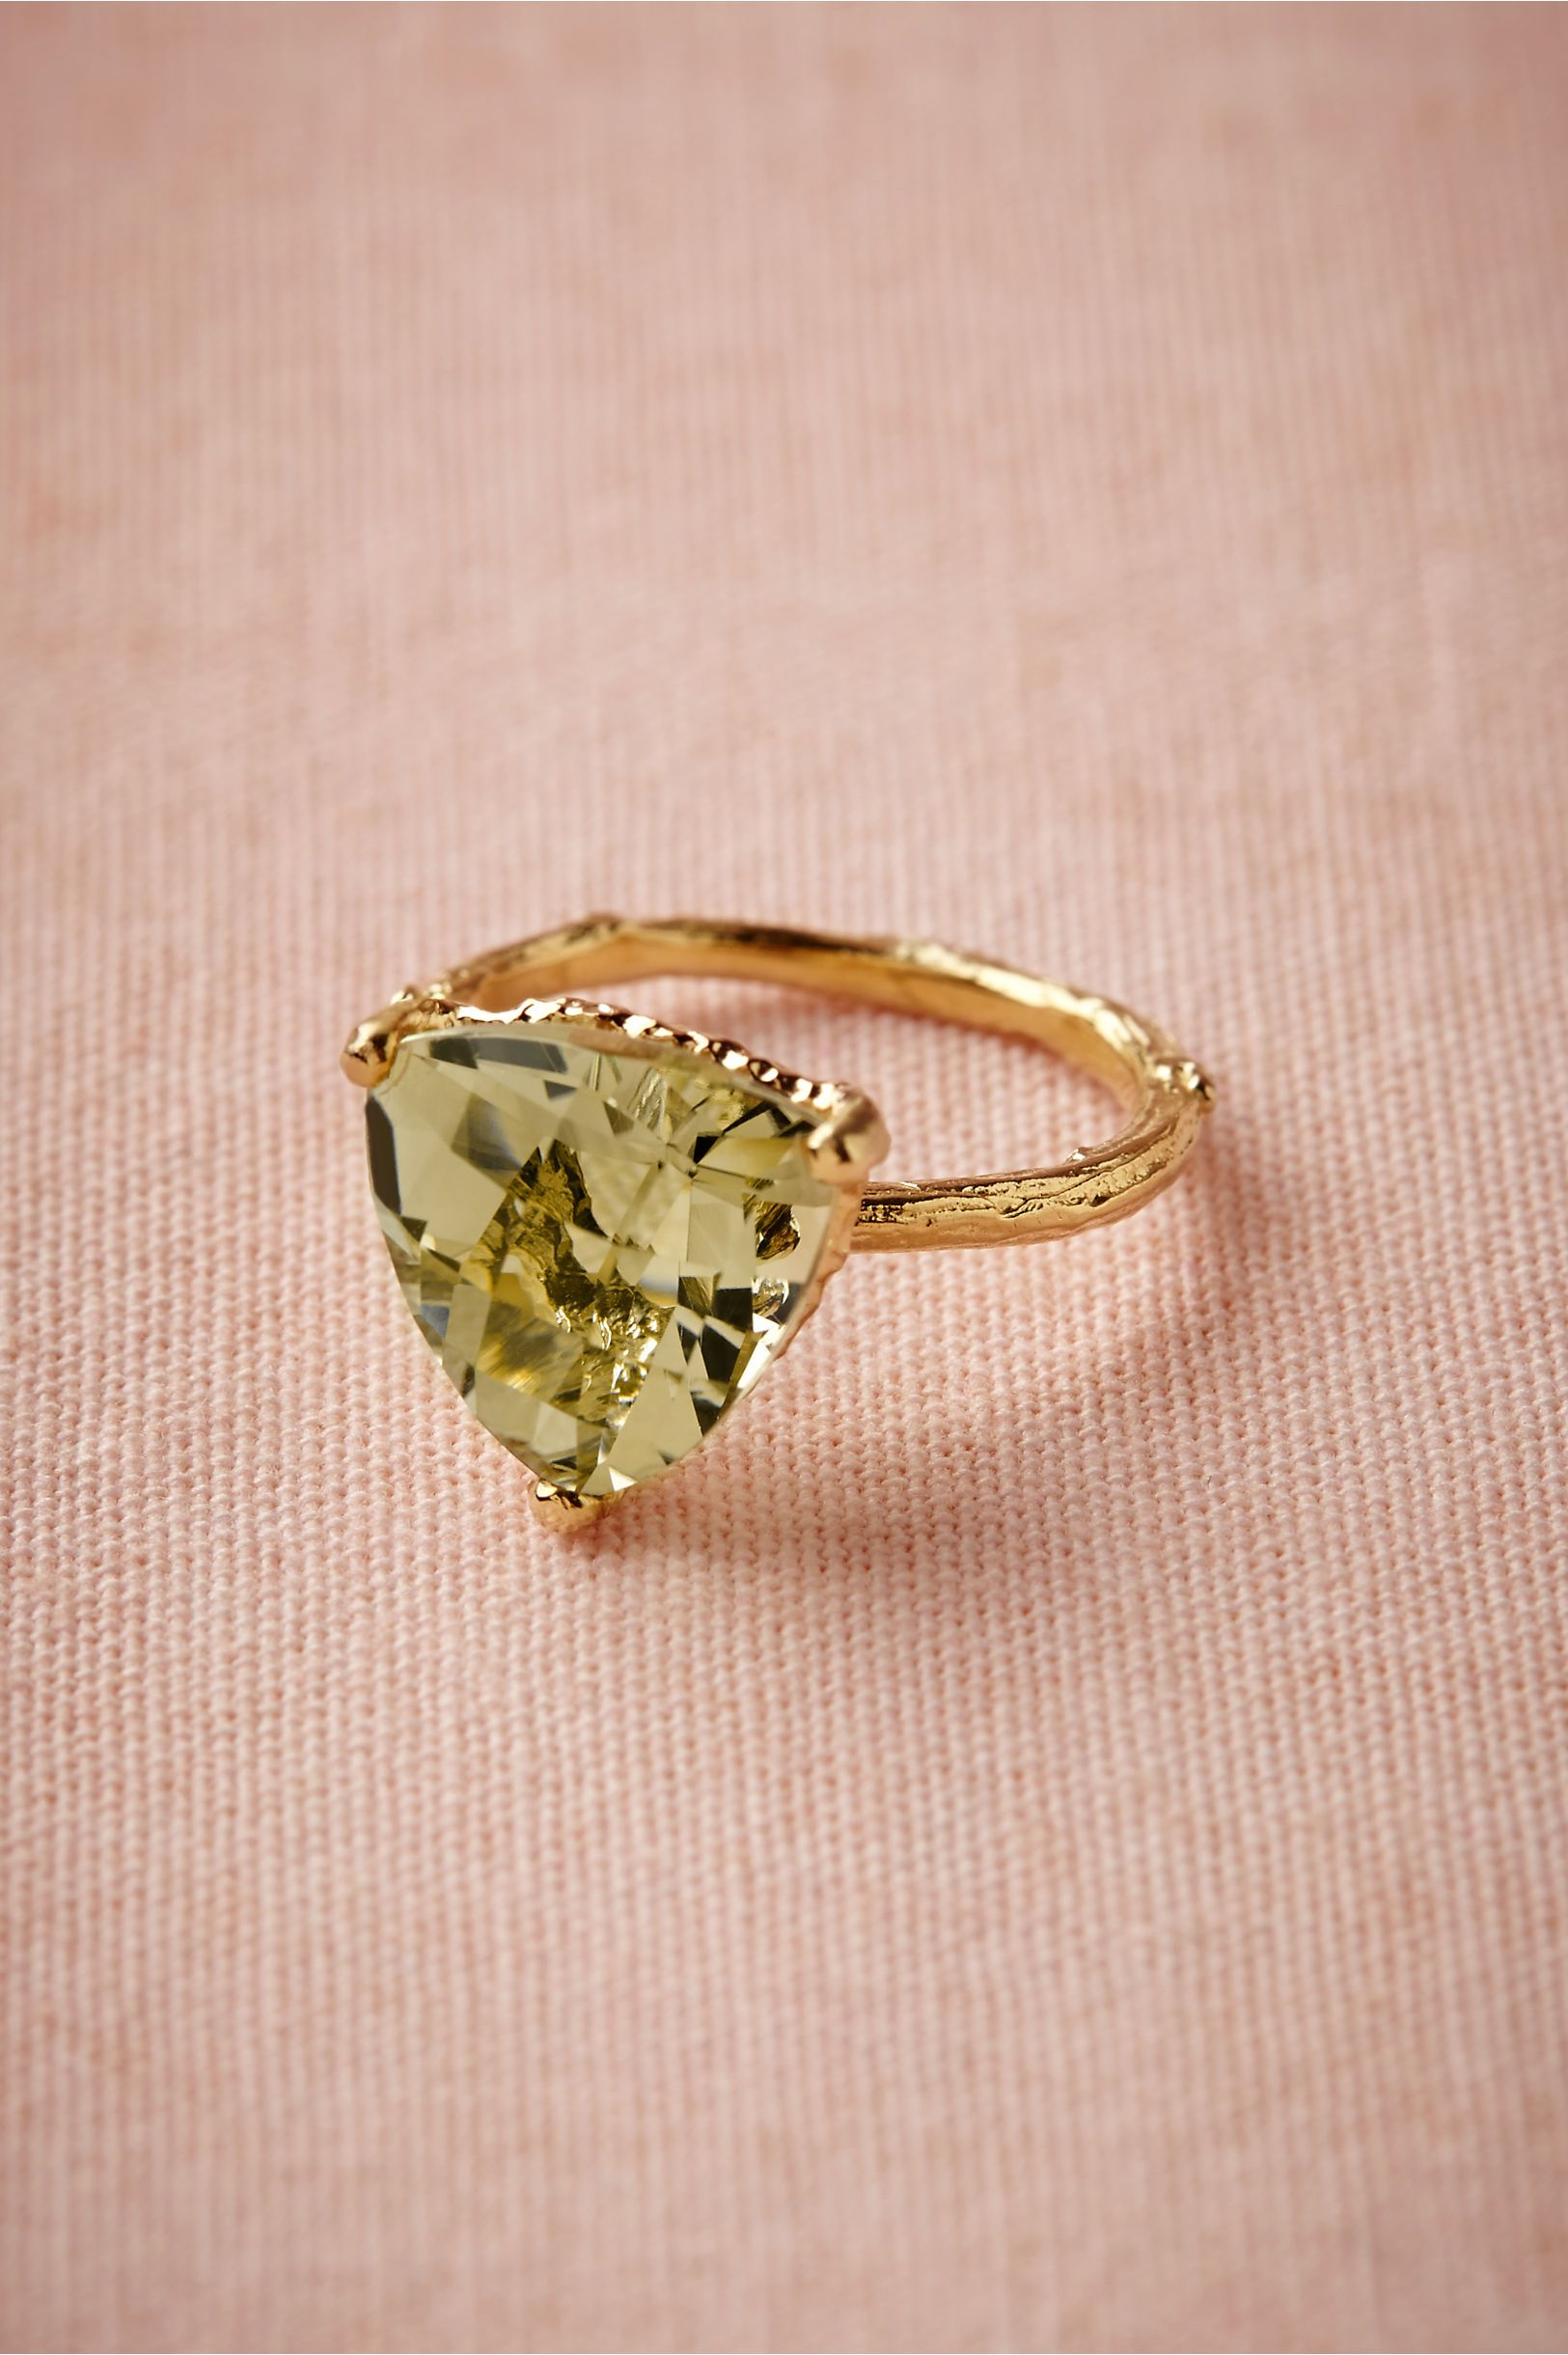 I LOVE EVERYTHING ABOUT THIS! The cut of the stone, the color, the ...